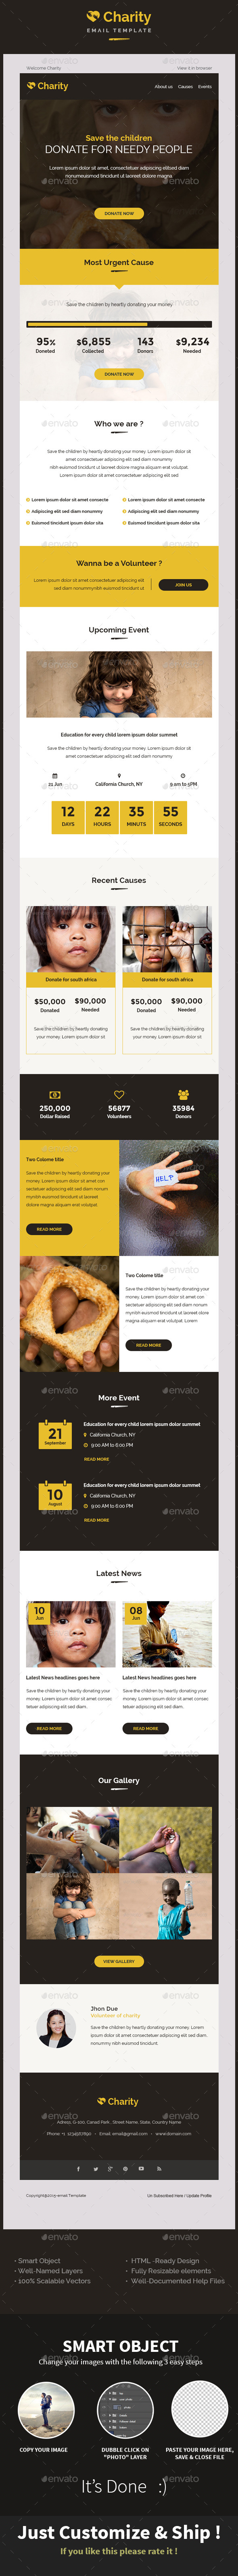 Charity Nonprofit Email Template PSD - E-newsletters Web Elements